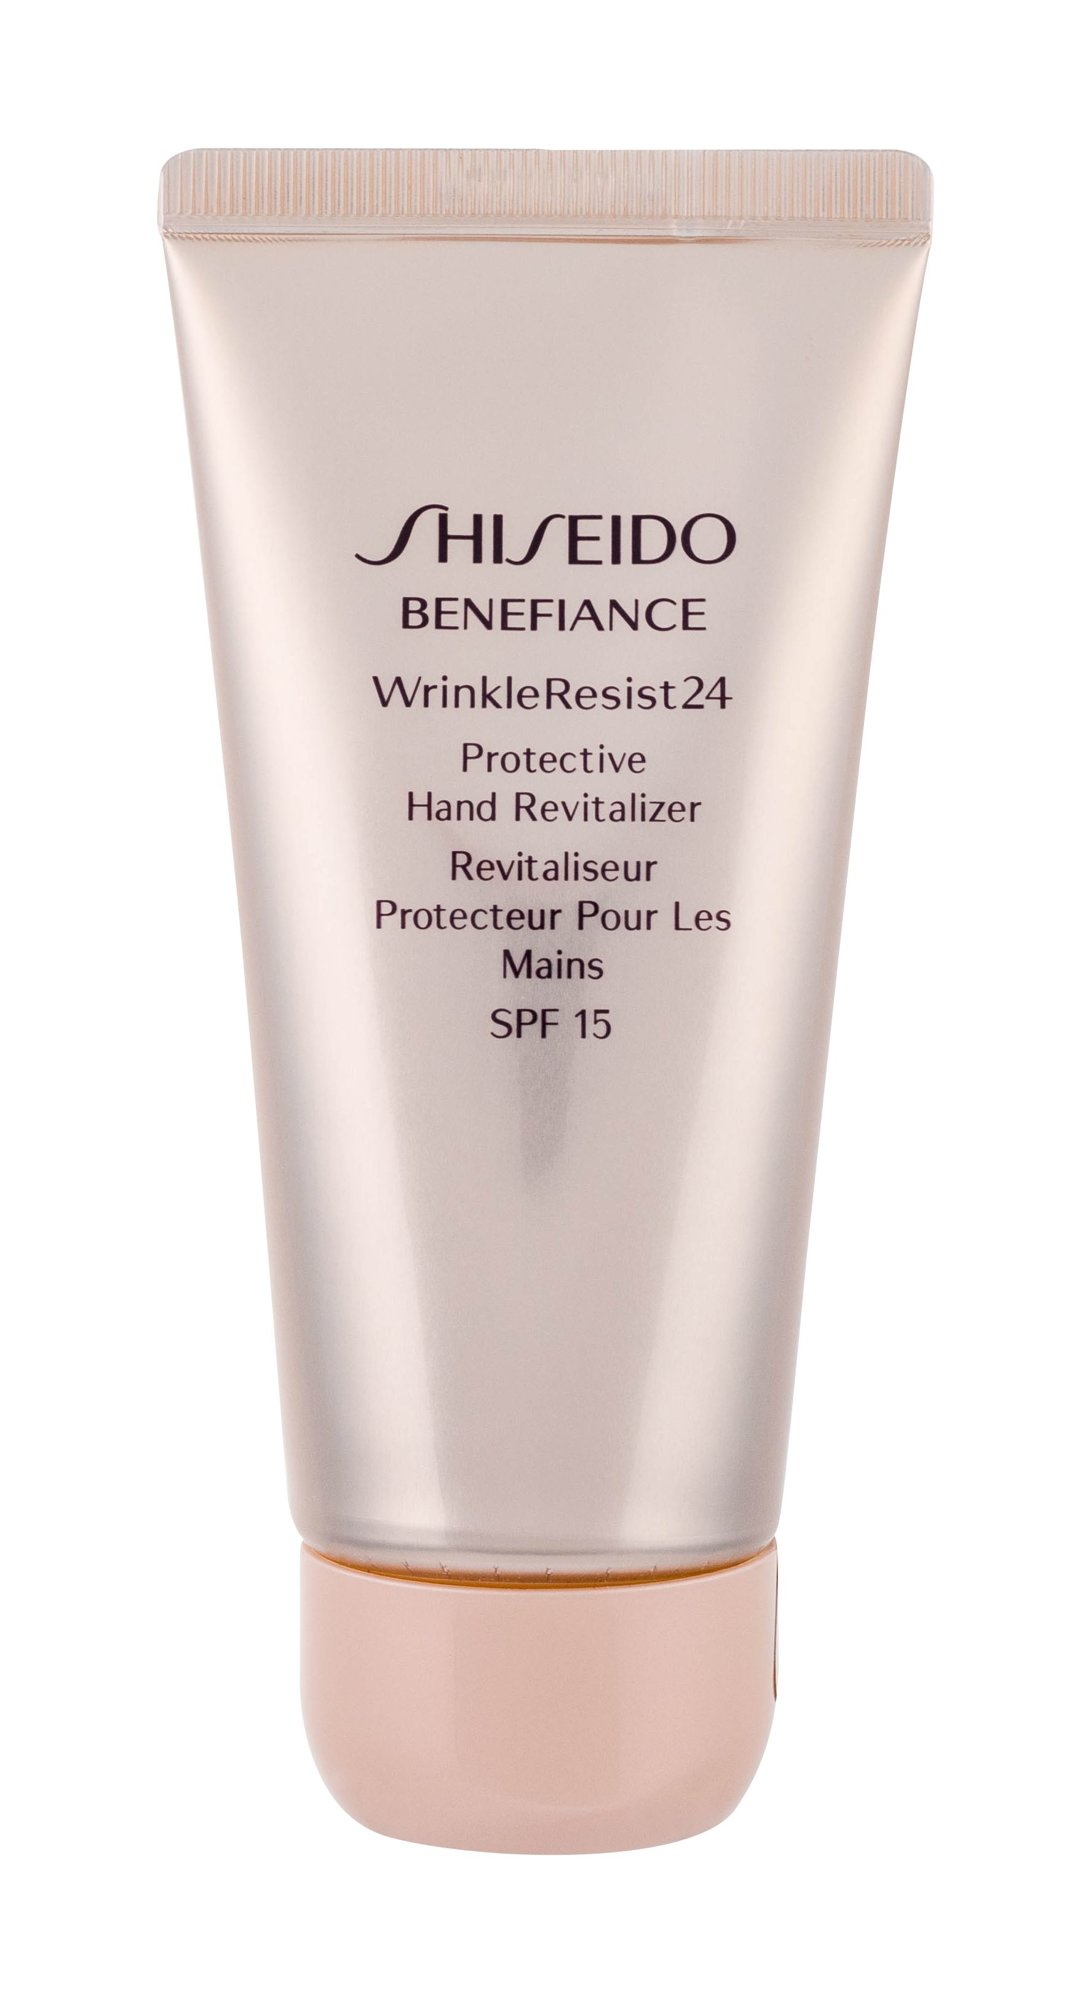 Shiseido Benefiance Wrinkle Resist 24 Hand Cream 75ml